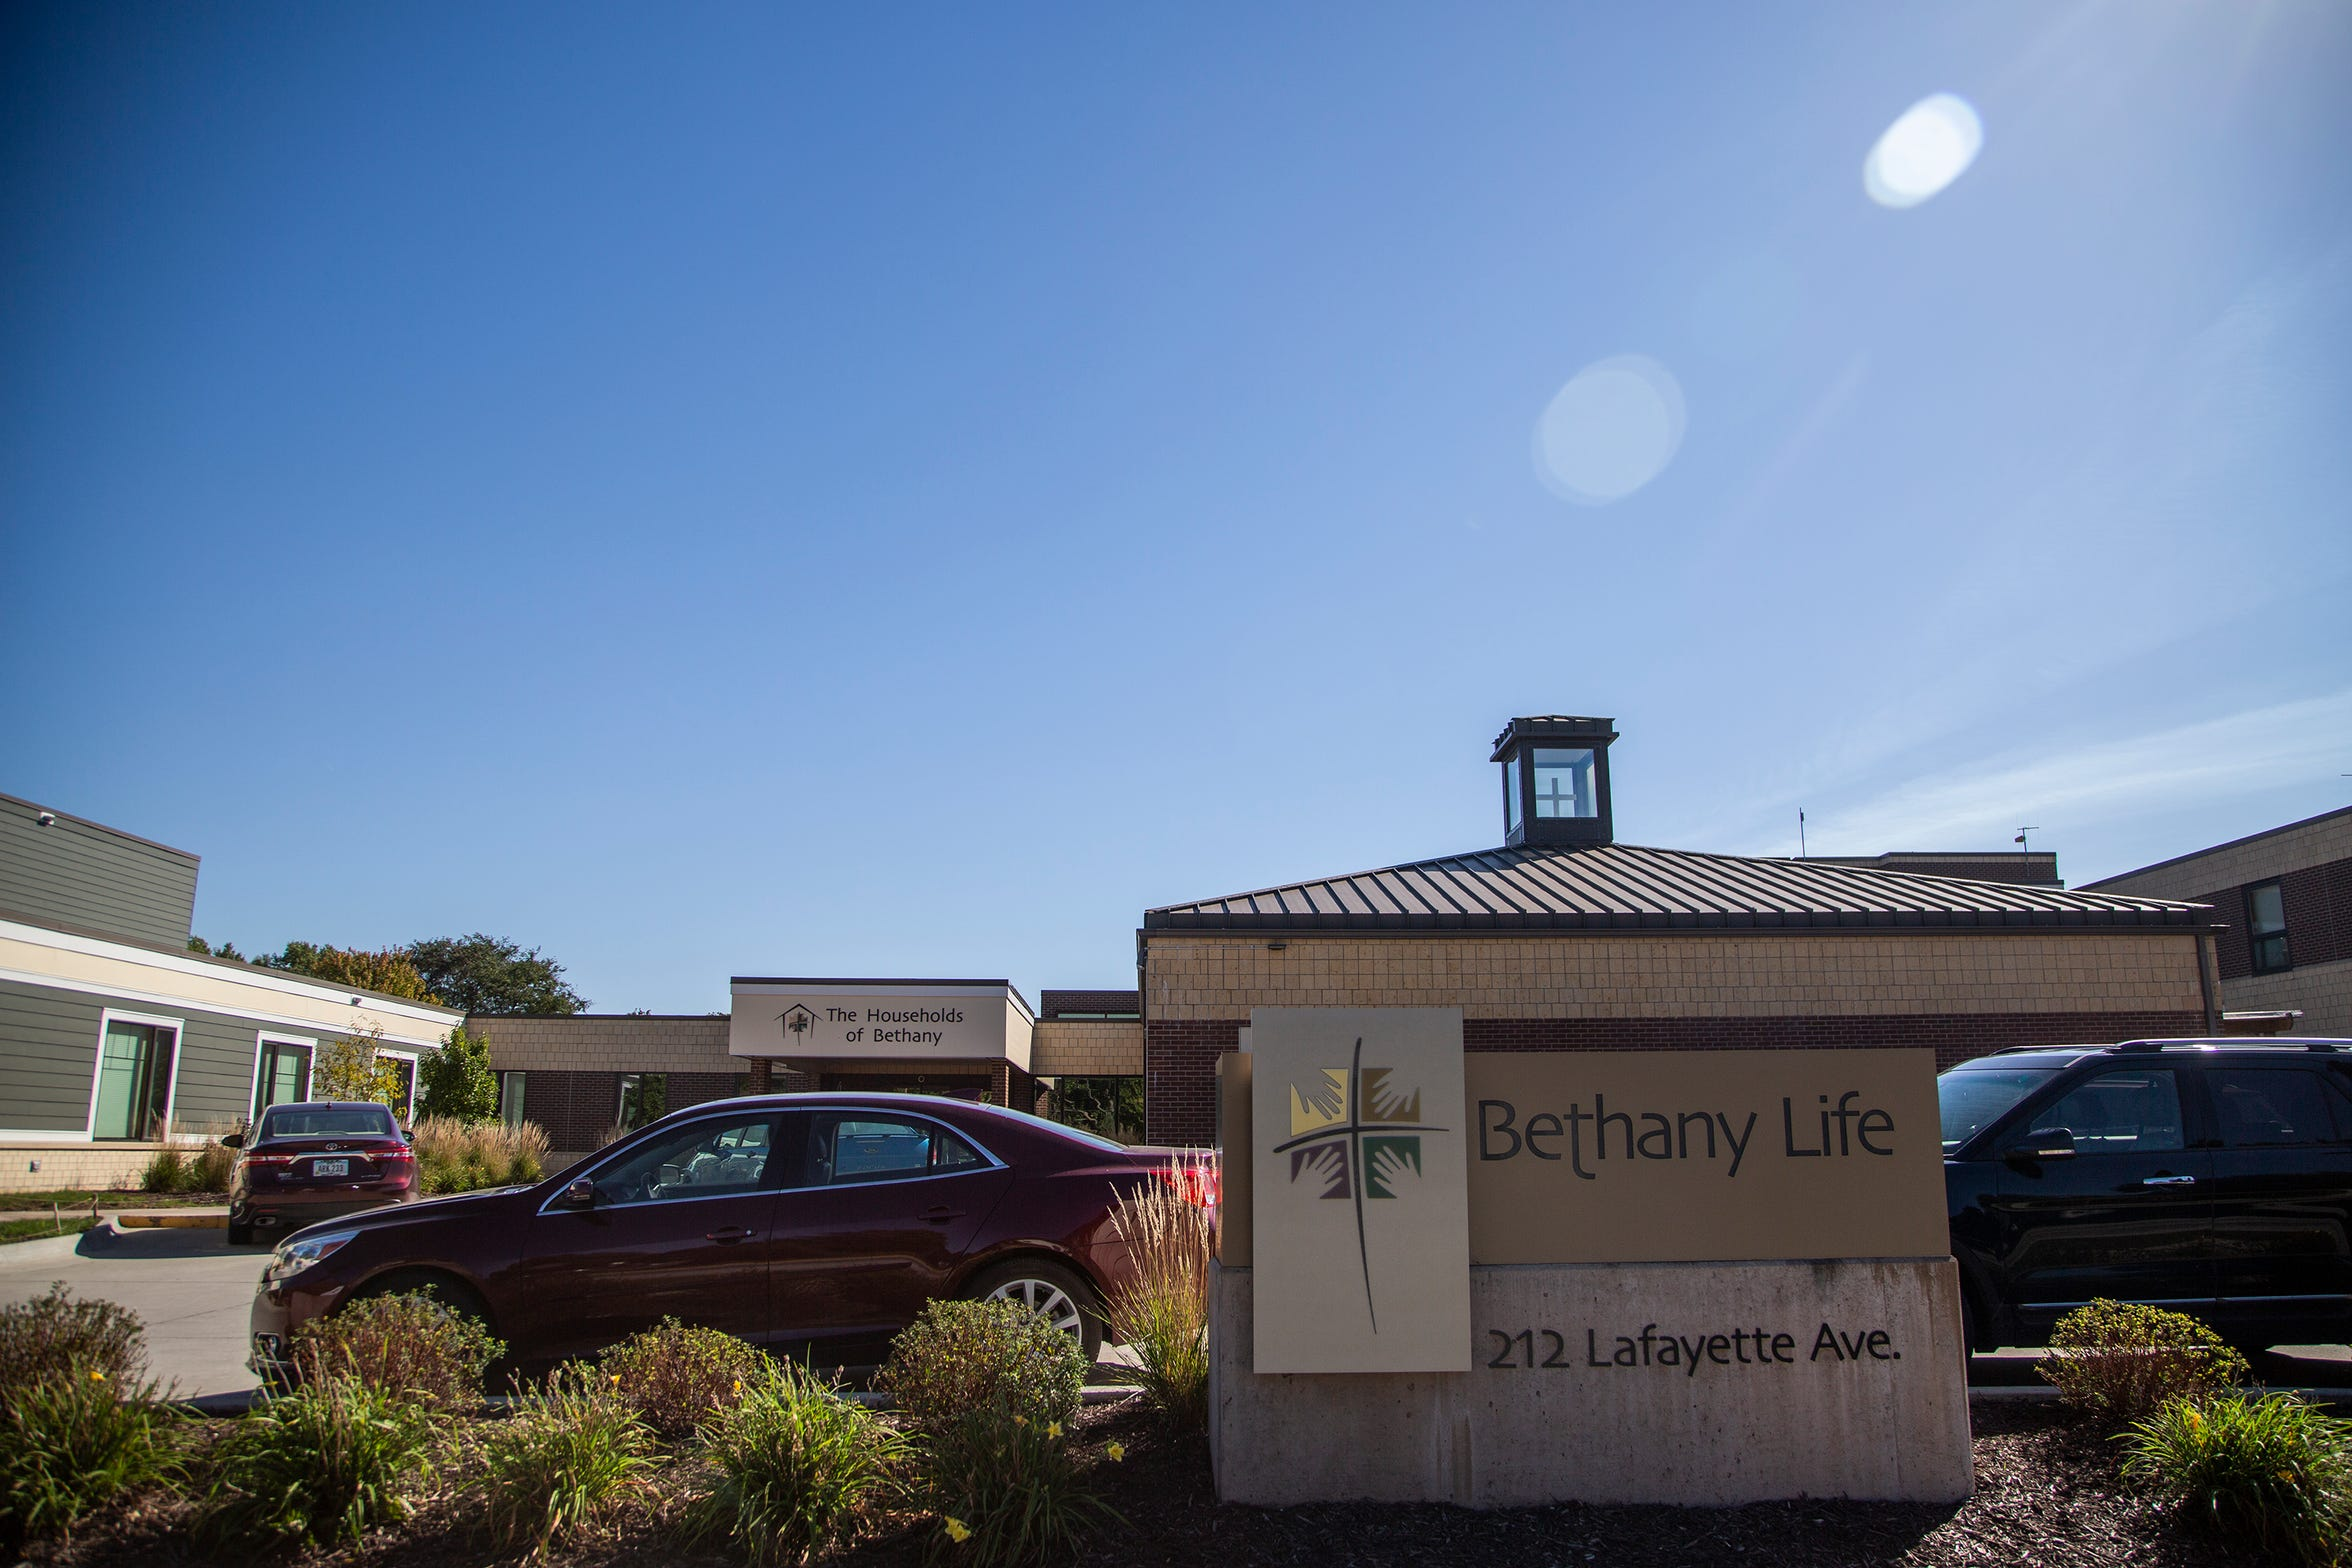 Bethany Life nursing home on Sunday, Sept. 23, 2018 in Story City. Bethany Life is one of a decreasing number of care facilities offering services to patients with dementia.